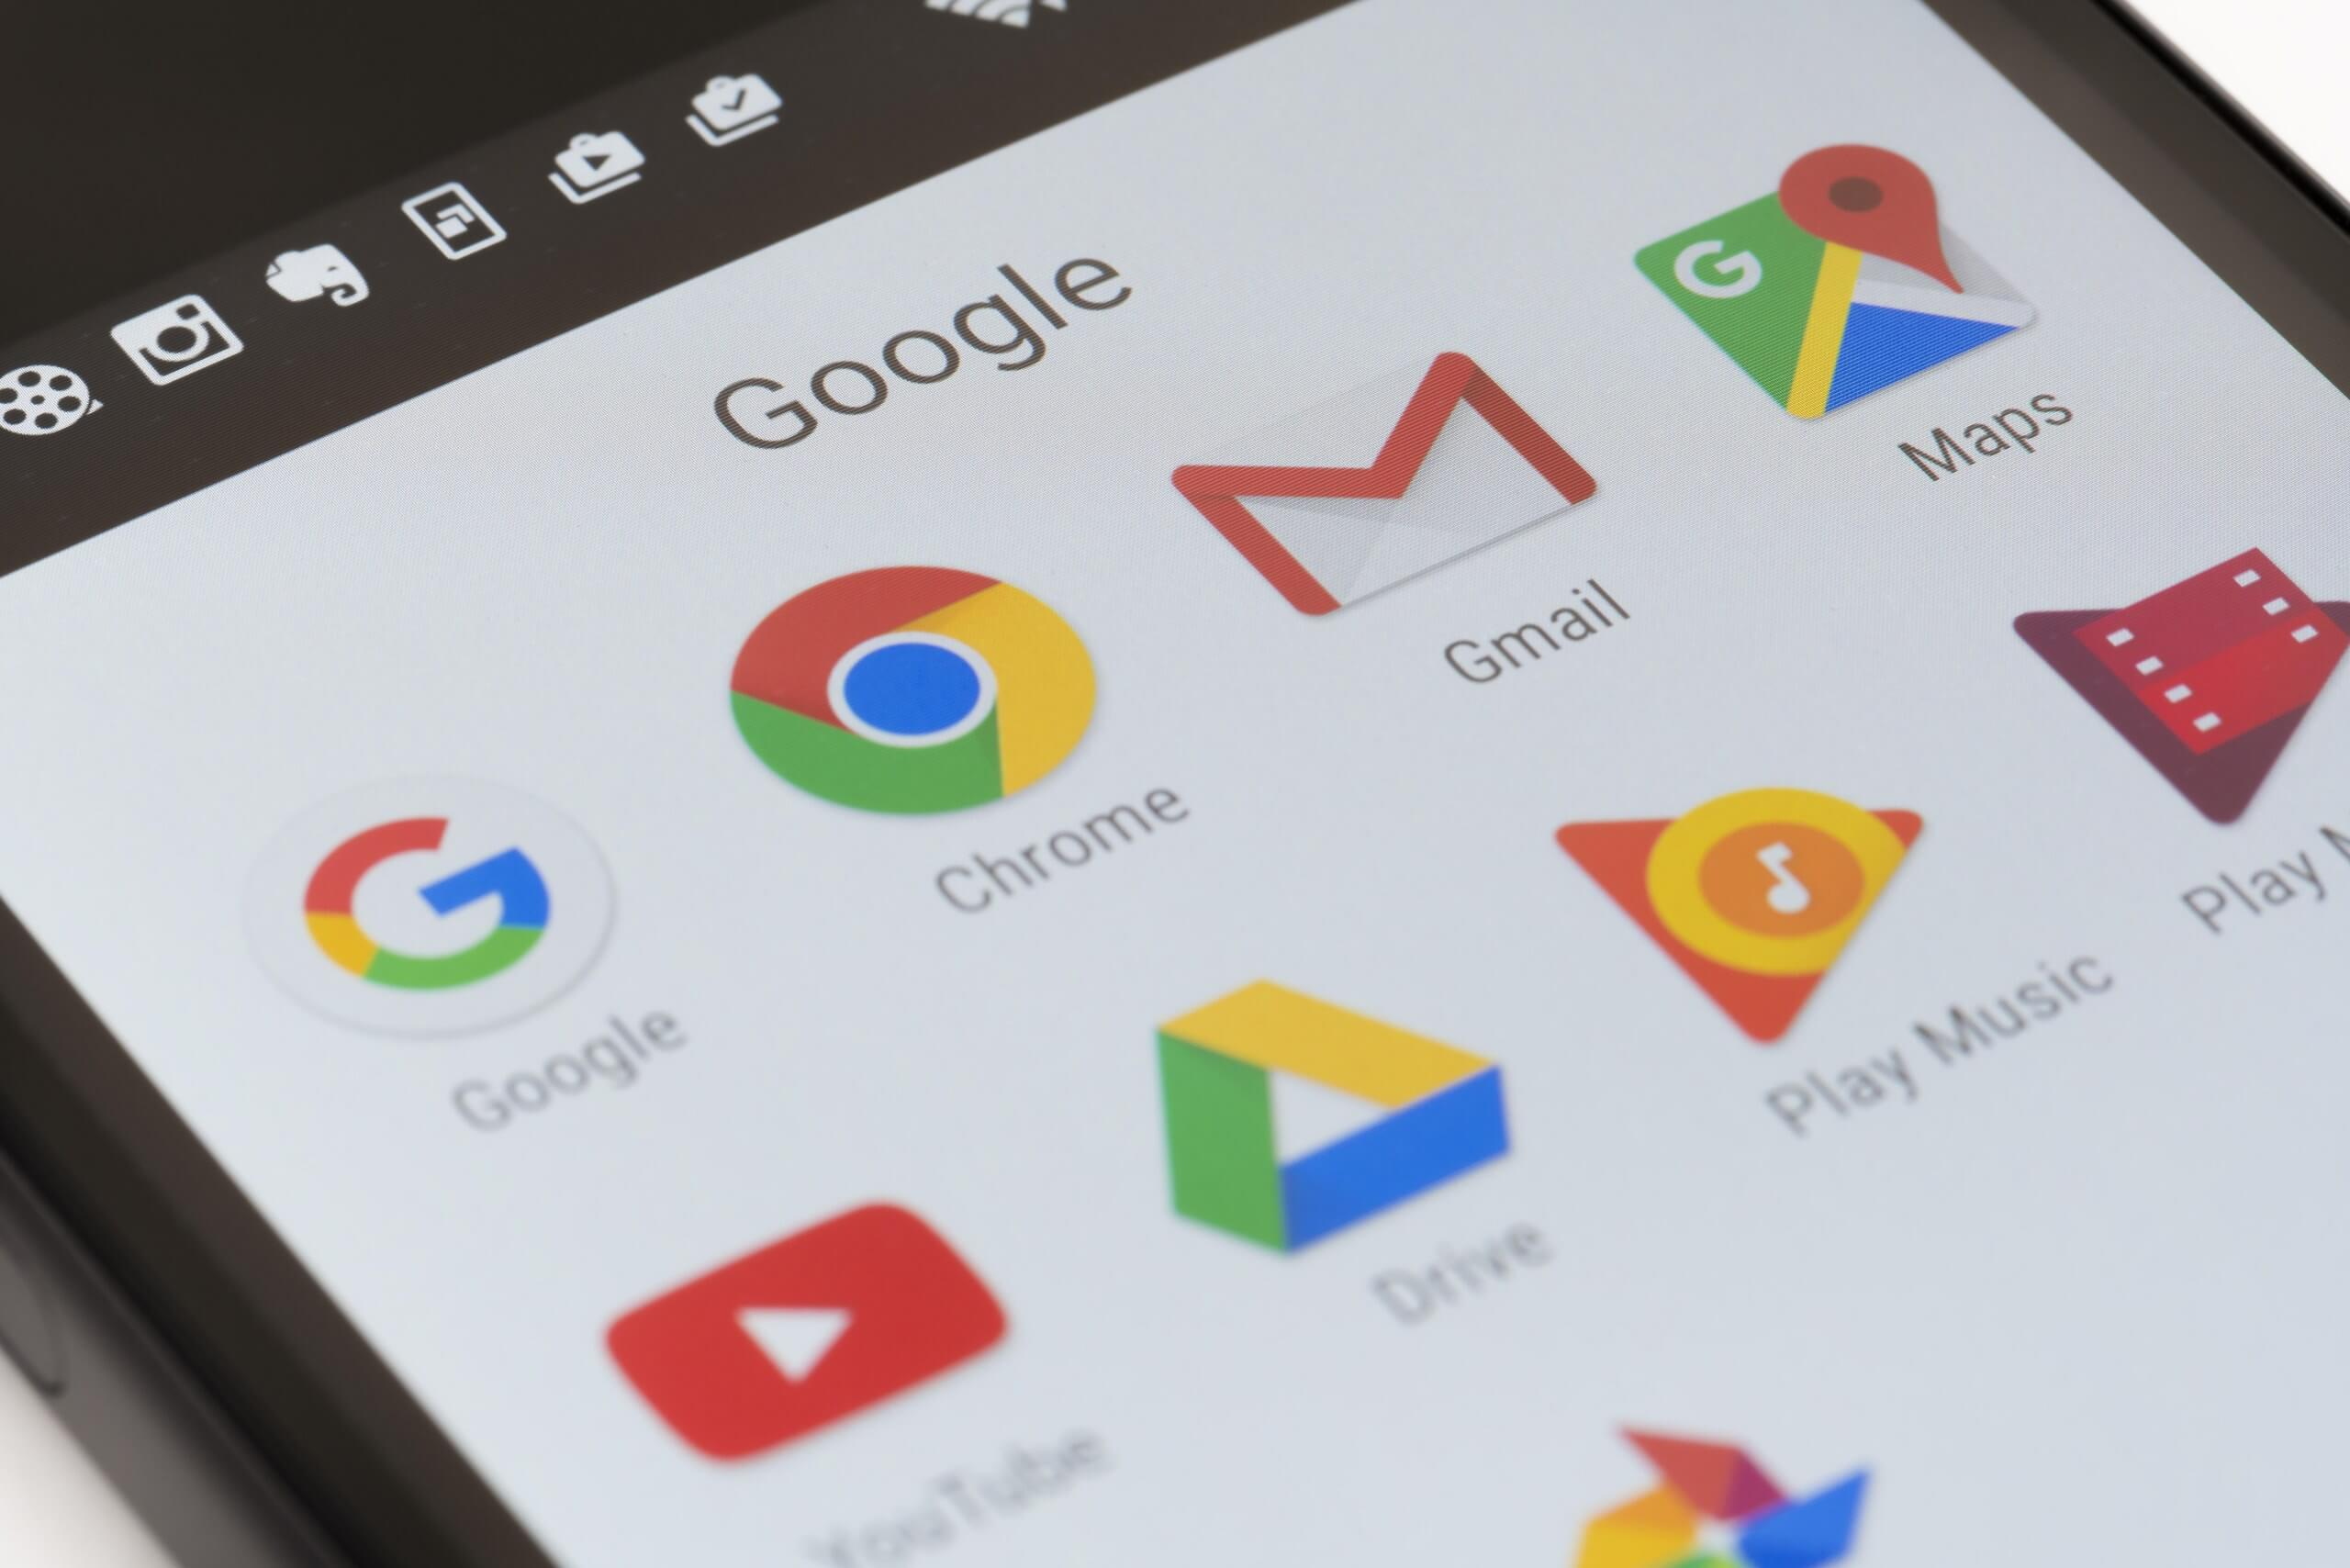 Google reportedly monitored data from rival Android services to build new apps